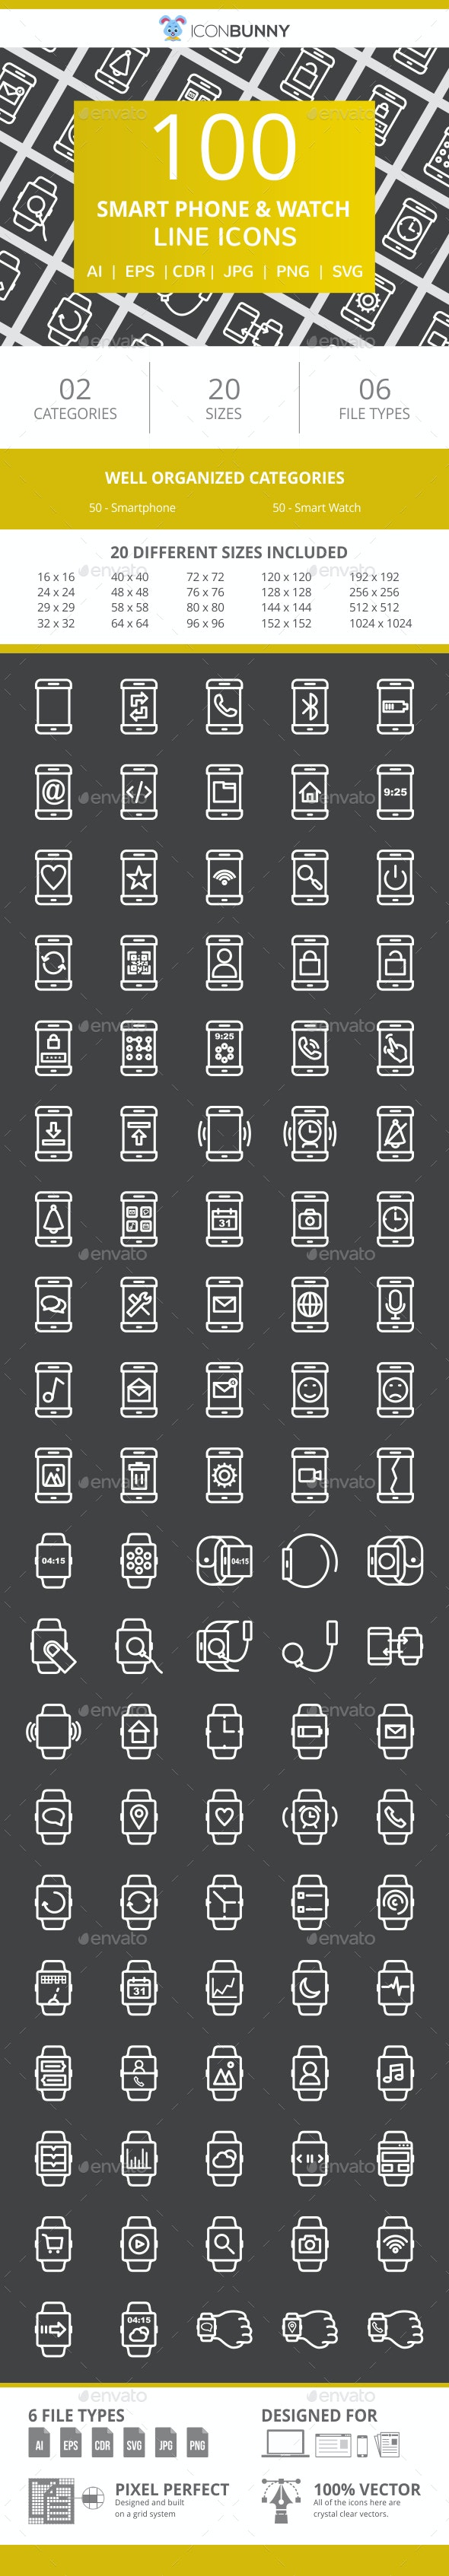 100 Smartphone & Smartwatch Line Inverted Icons - Icons